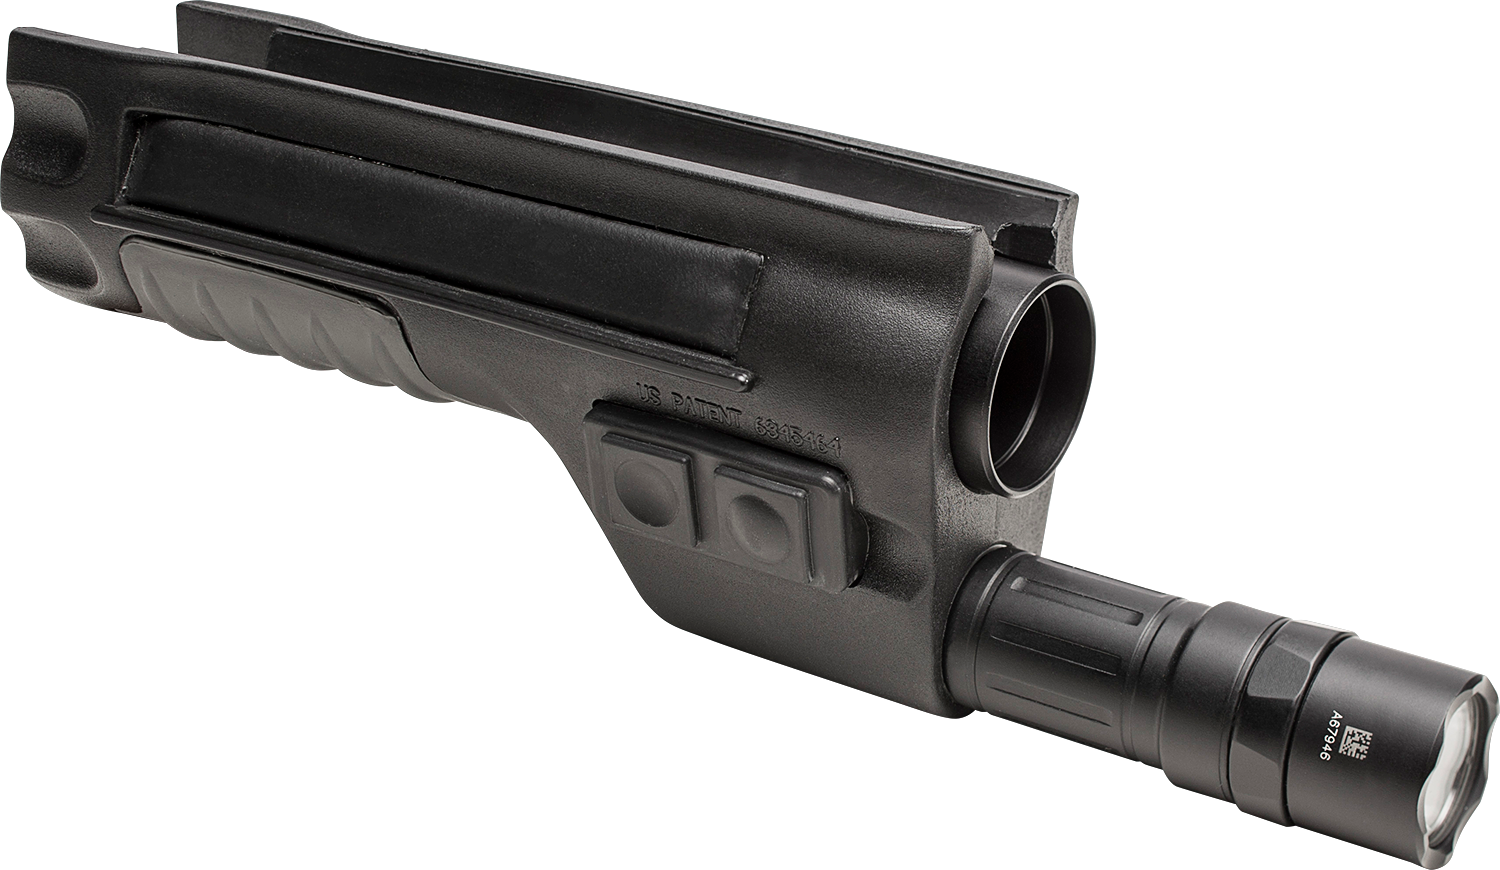 Surefire 623LMG Ultra-High-Output Forend WeaponLight for Mossberg 500/590 (PRE ORDER)